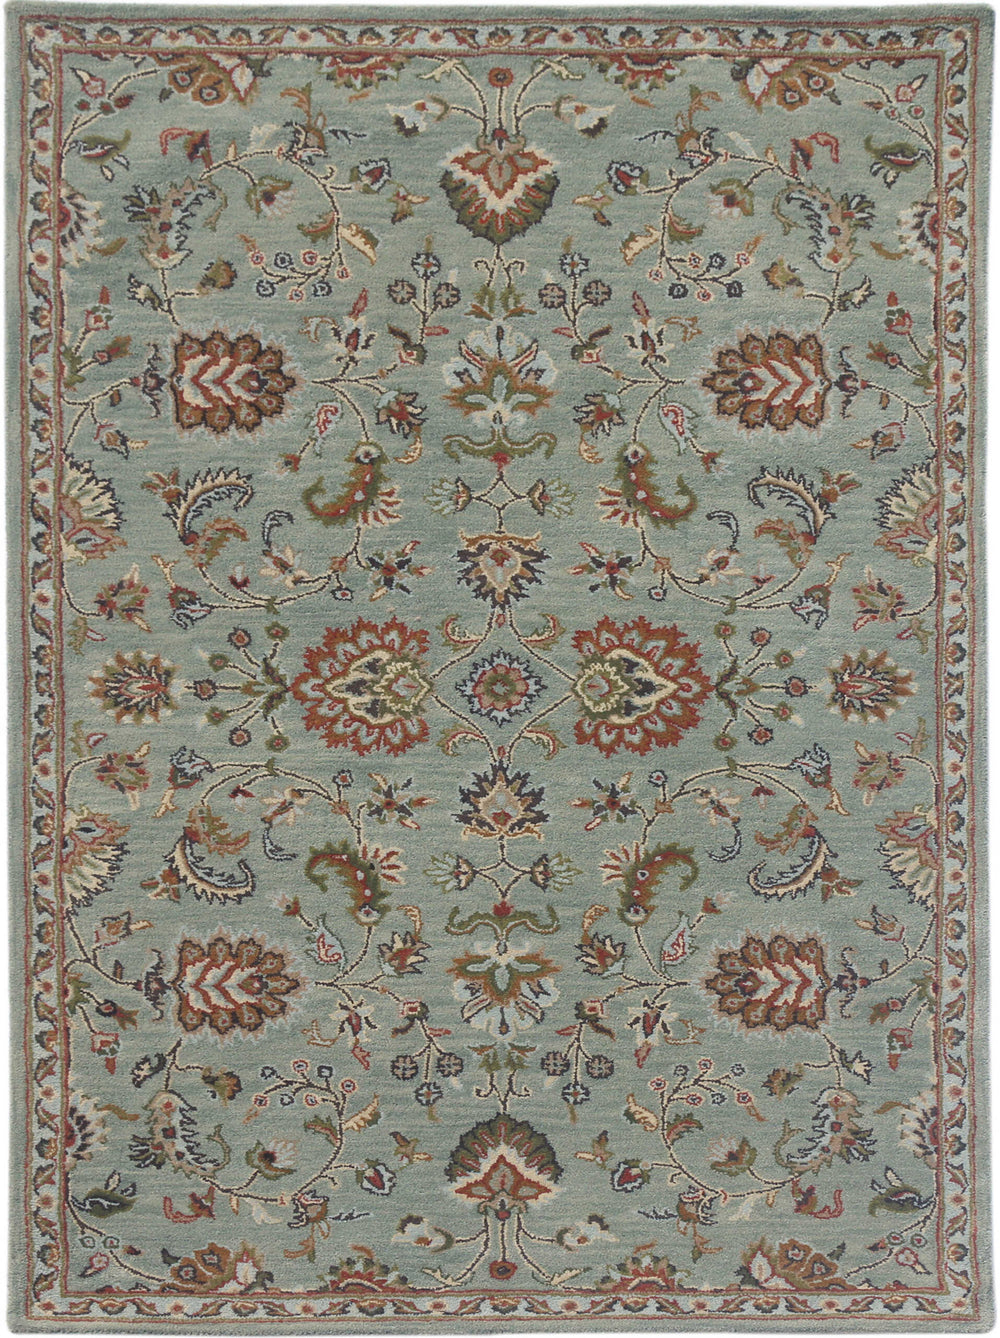 Amer Rugs Liberty LIB-6 Area Rug